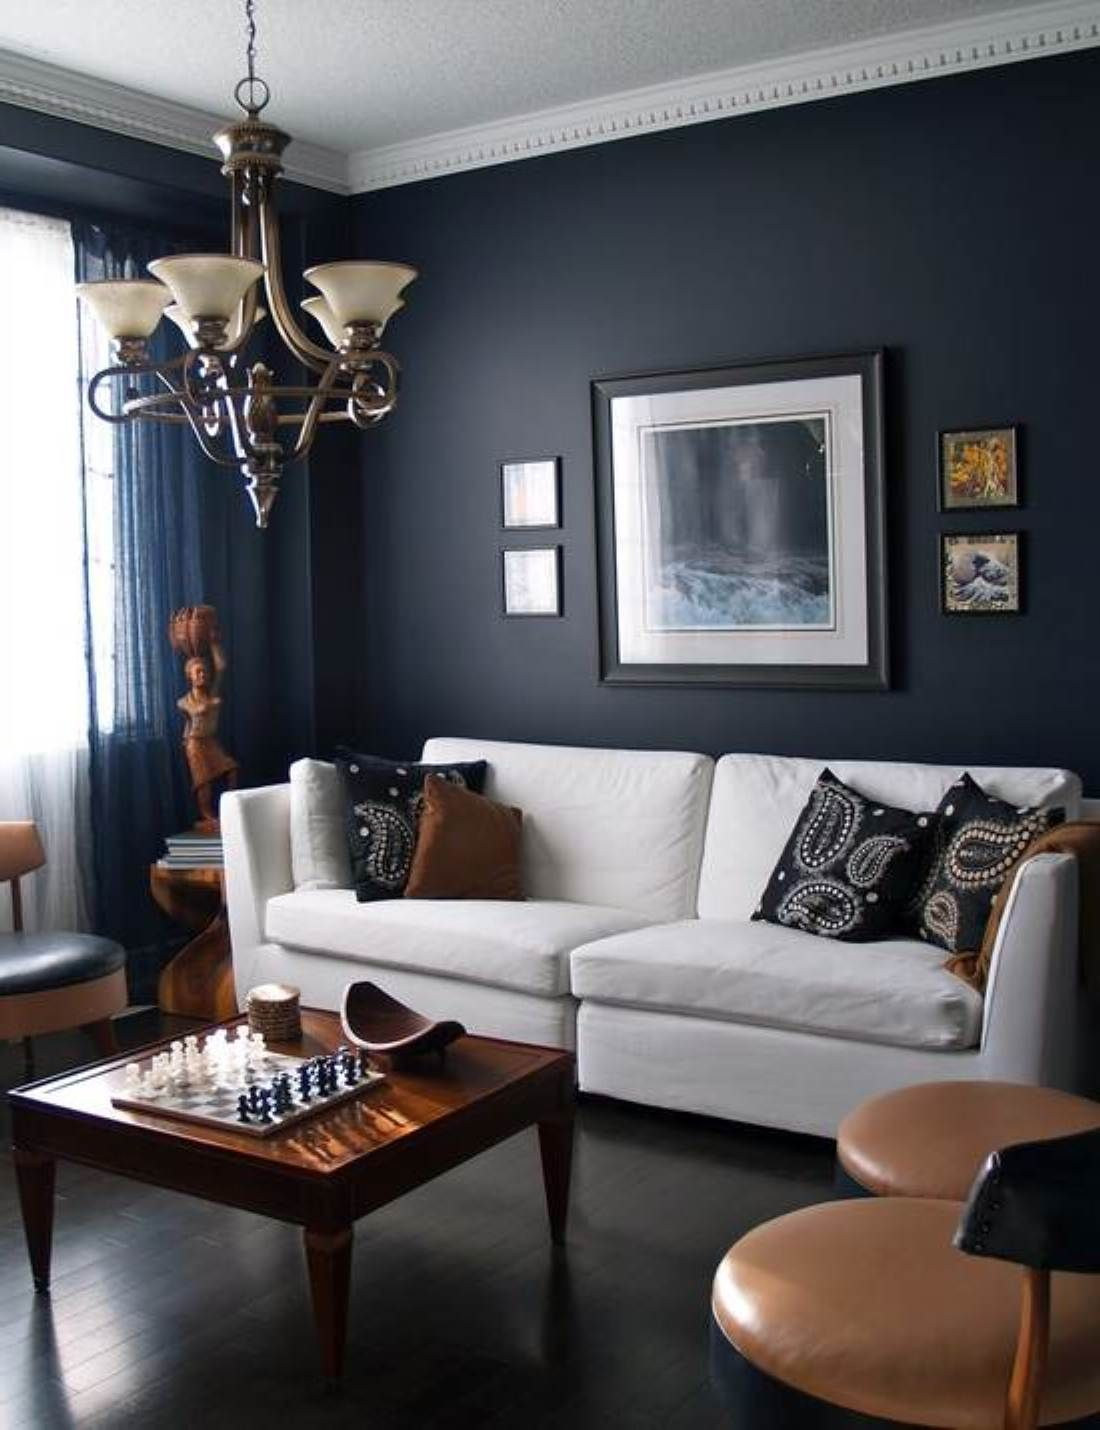 Cool Small Living Room Paint Idea With Black Wall Color And Dark Wooden Floor And White